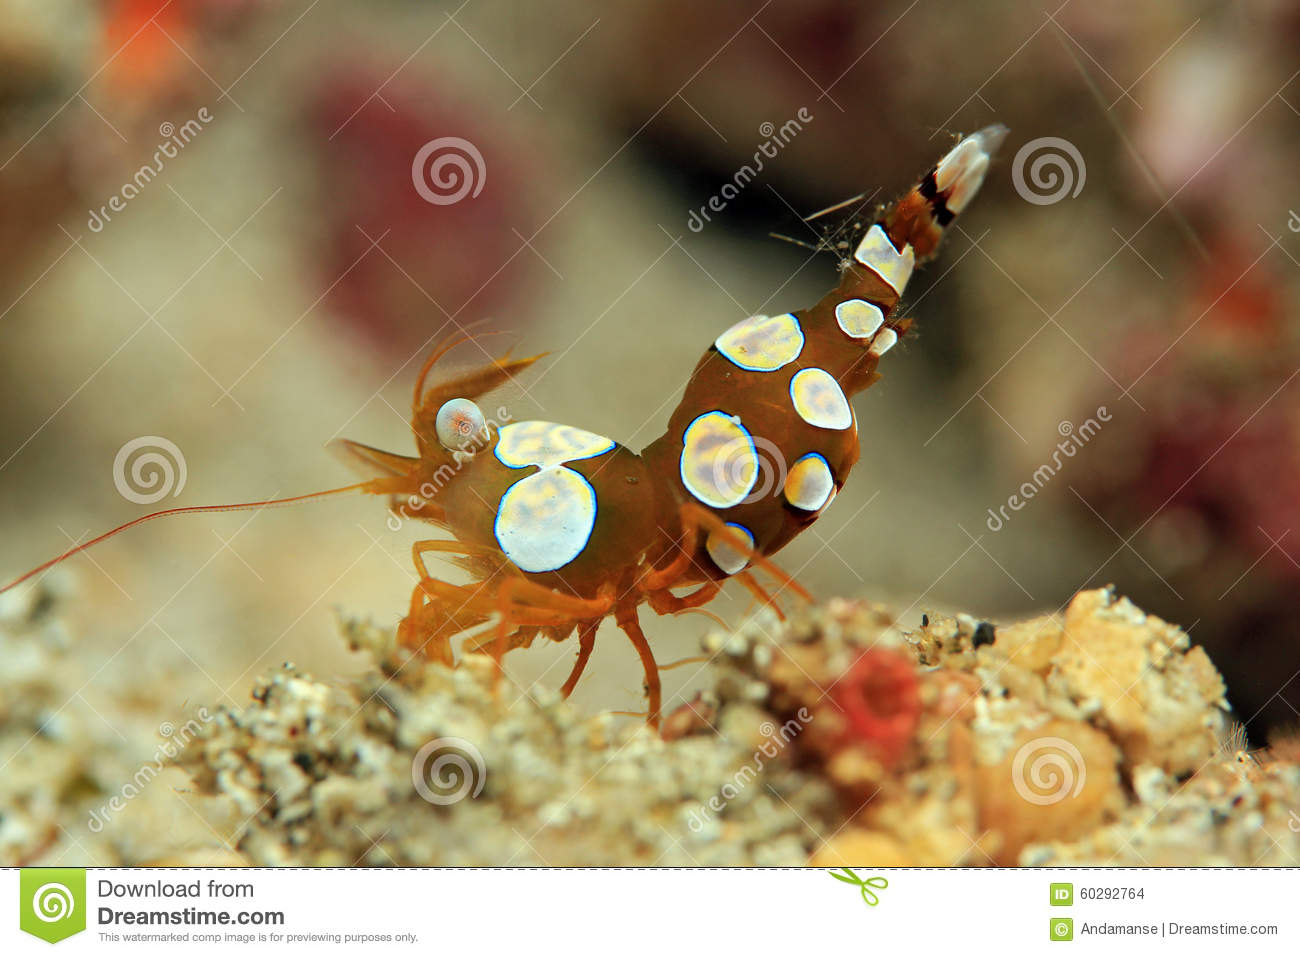 Squat Shrimp